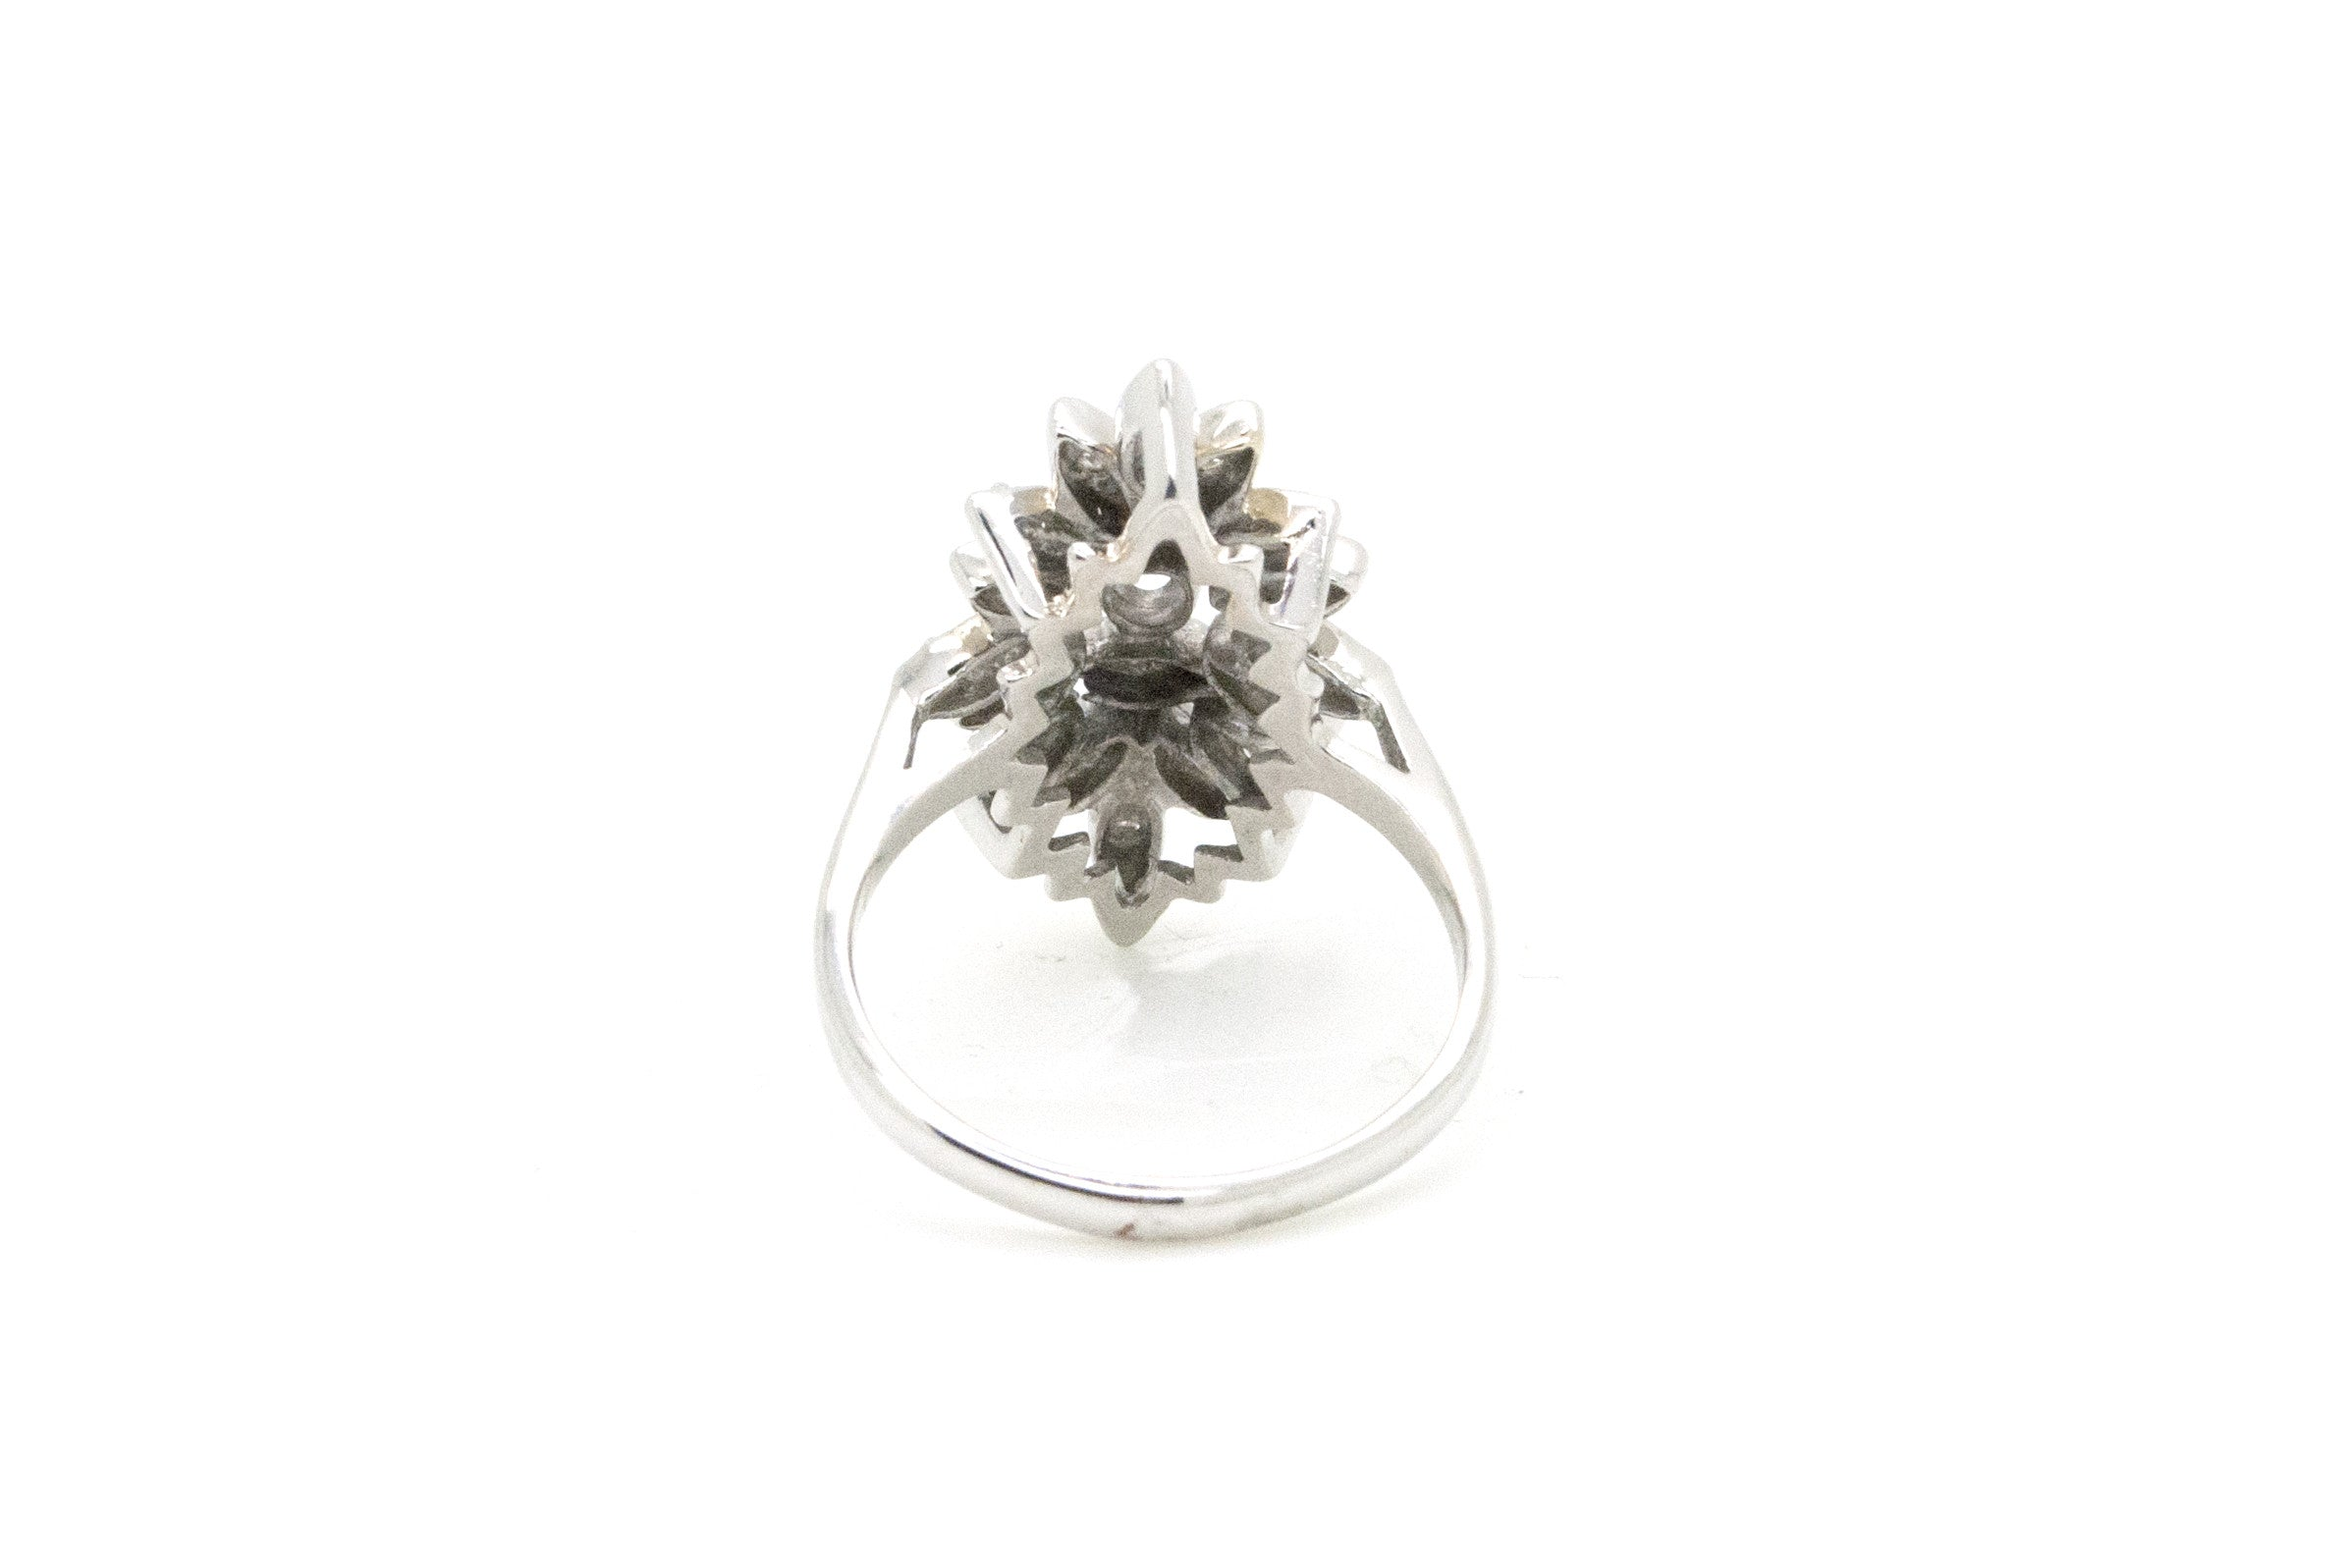 Vintage 14k White Gold Diamond Cluster Cocktail Ring - .25 ct. total - Size 8